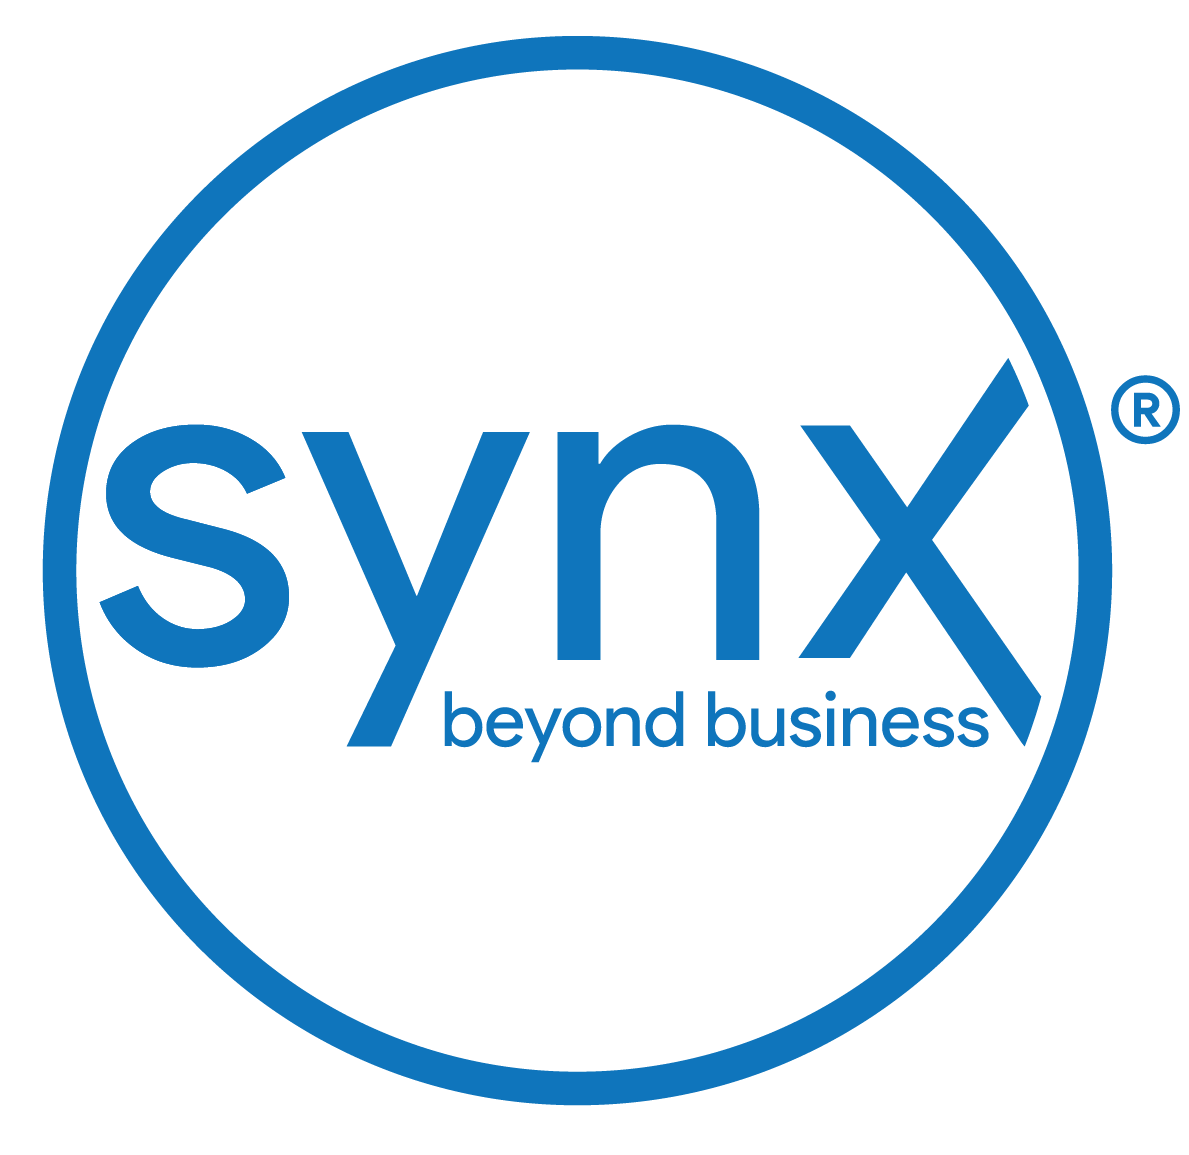 Synx.png